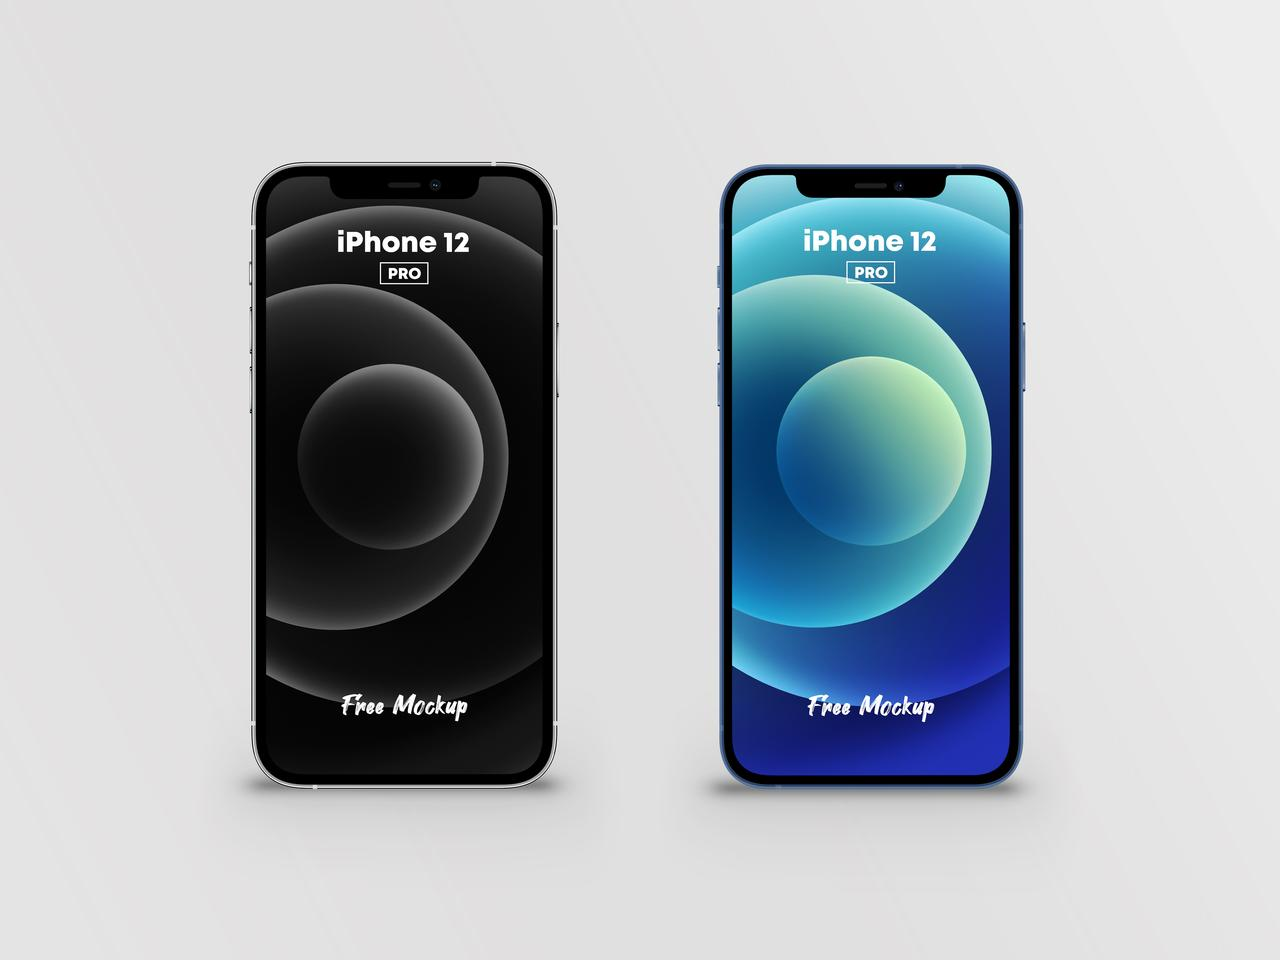 iPhone 12 Pro (2 Colors) Free PSD Mockup